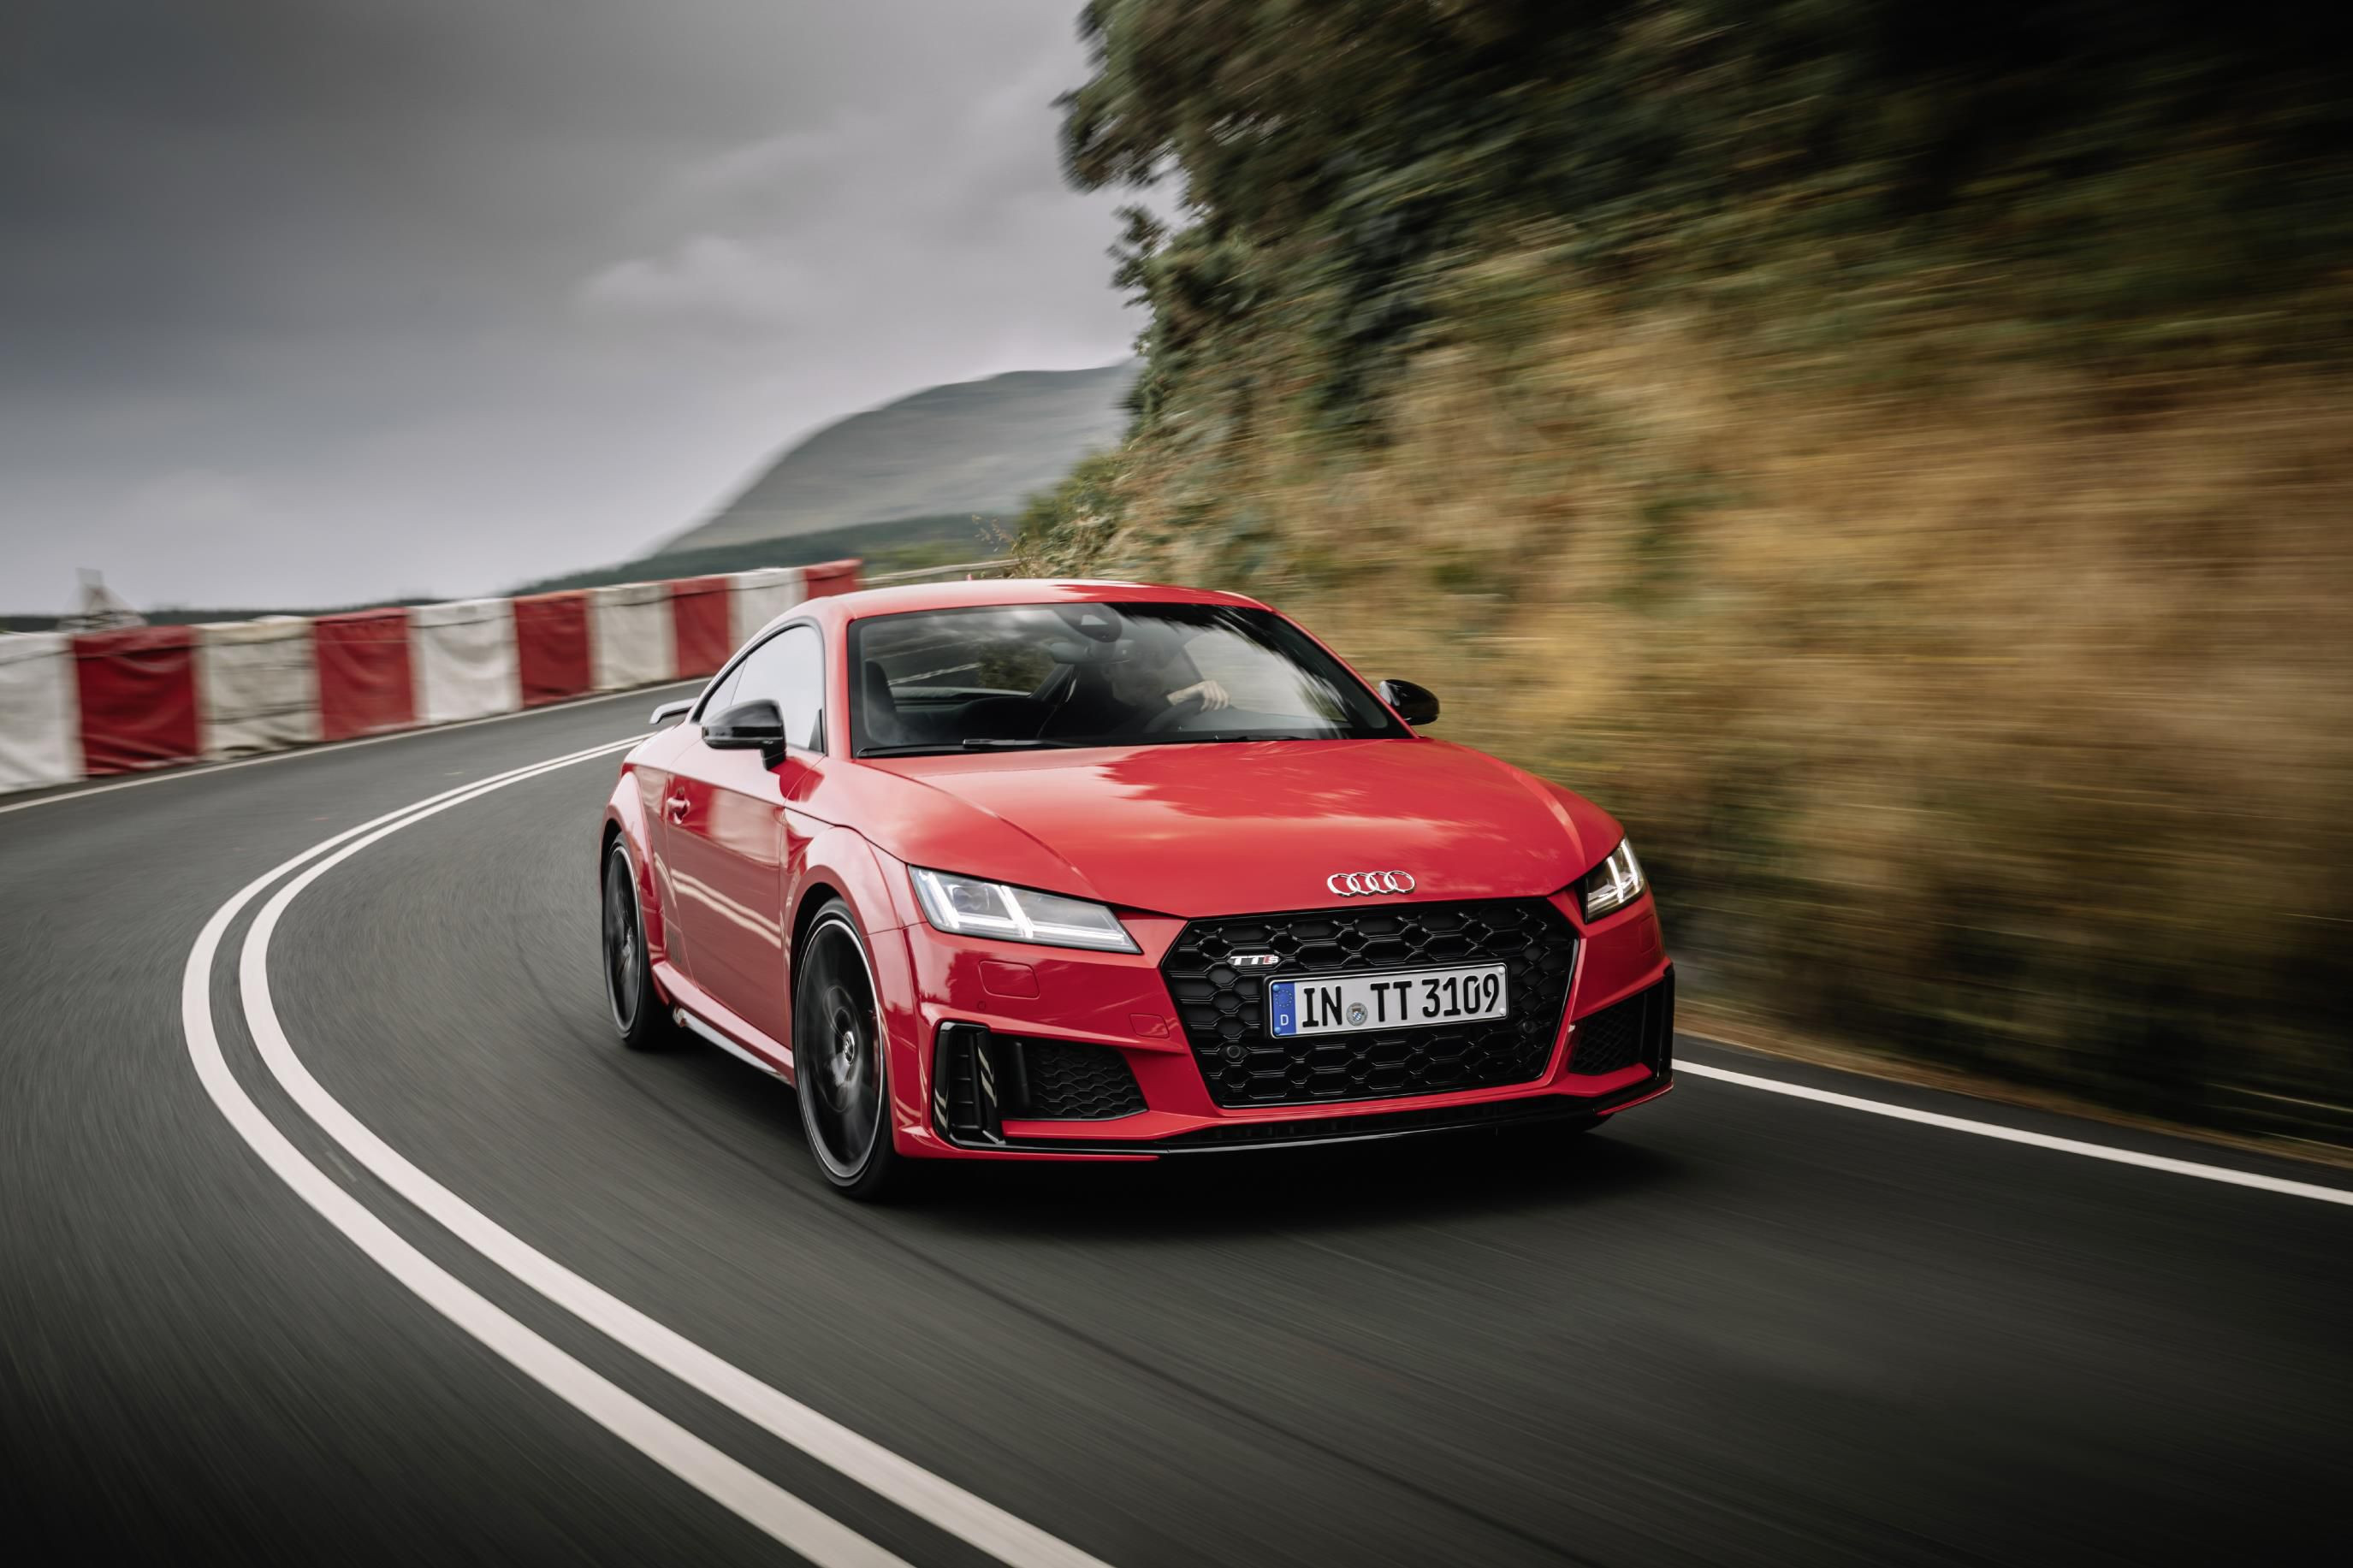 Red Audi TT taking a corner at speed